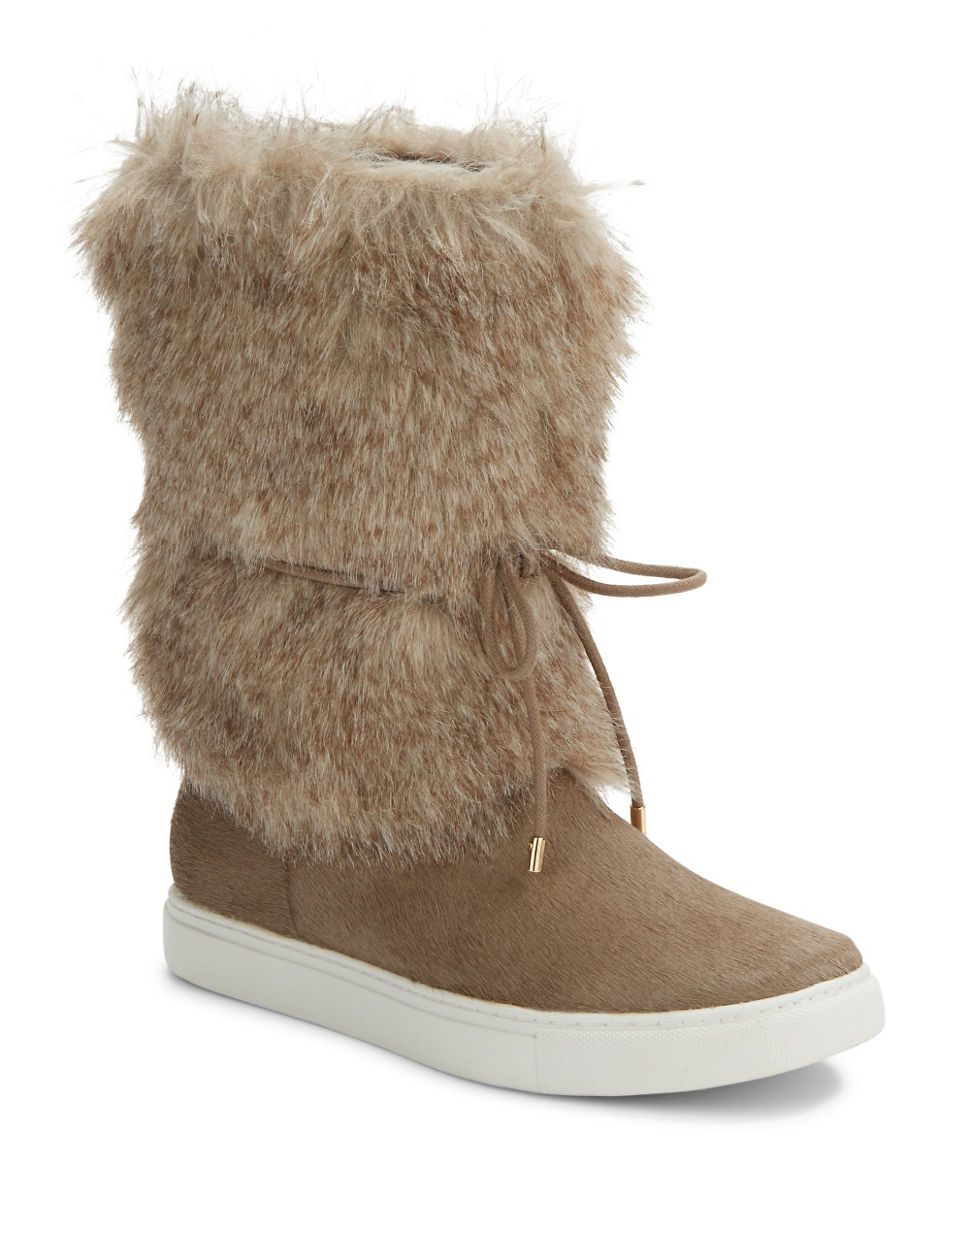 Kenneth Cole New York Shoes And Boots